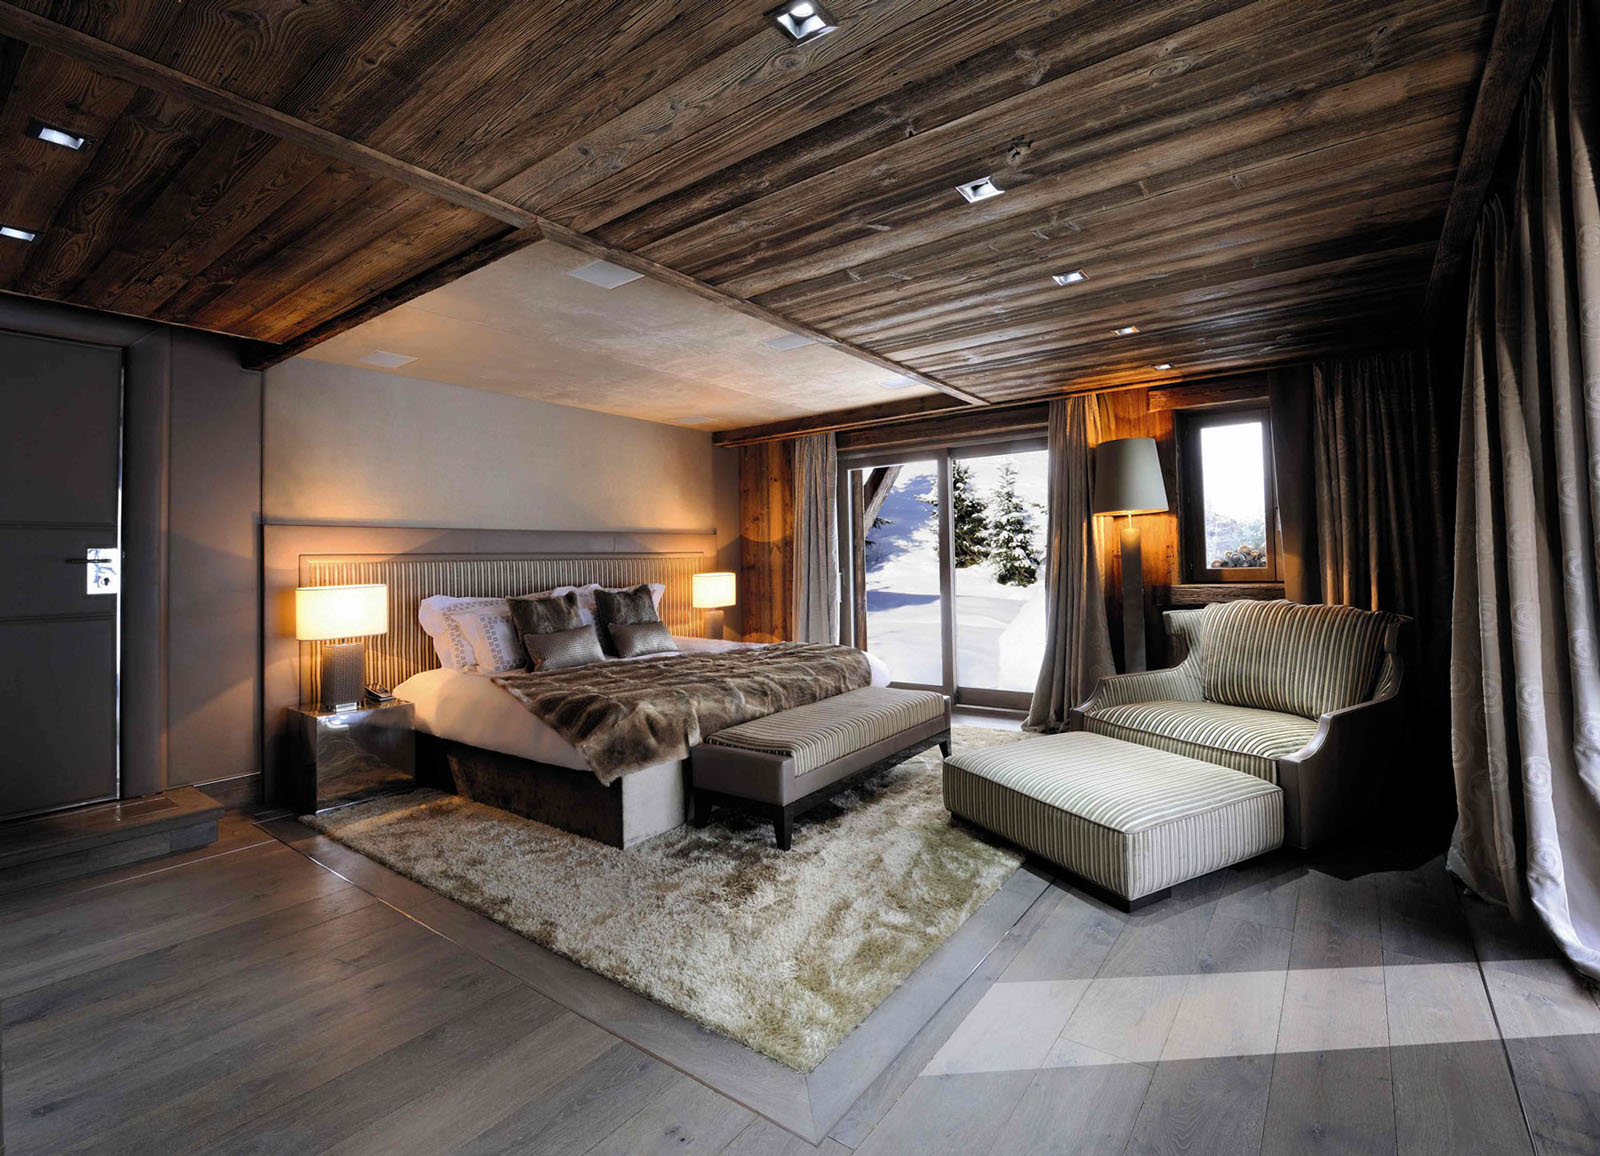 Chic modern rustic chalet in the rh ne alpes idesignarch interior design - Deco style chalet moderne ...